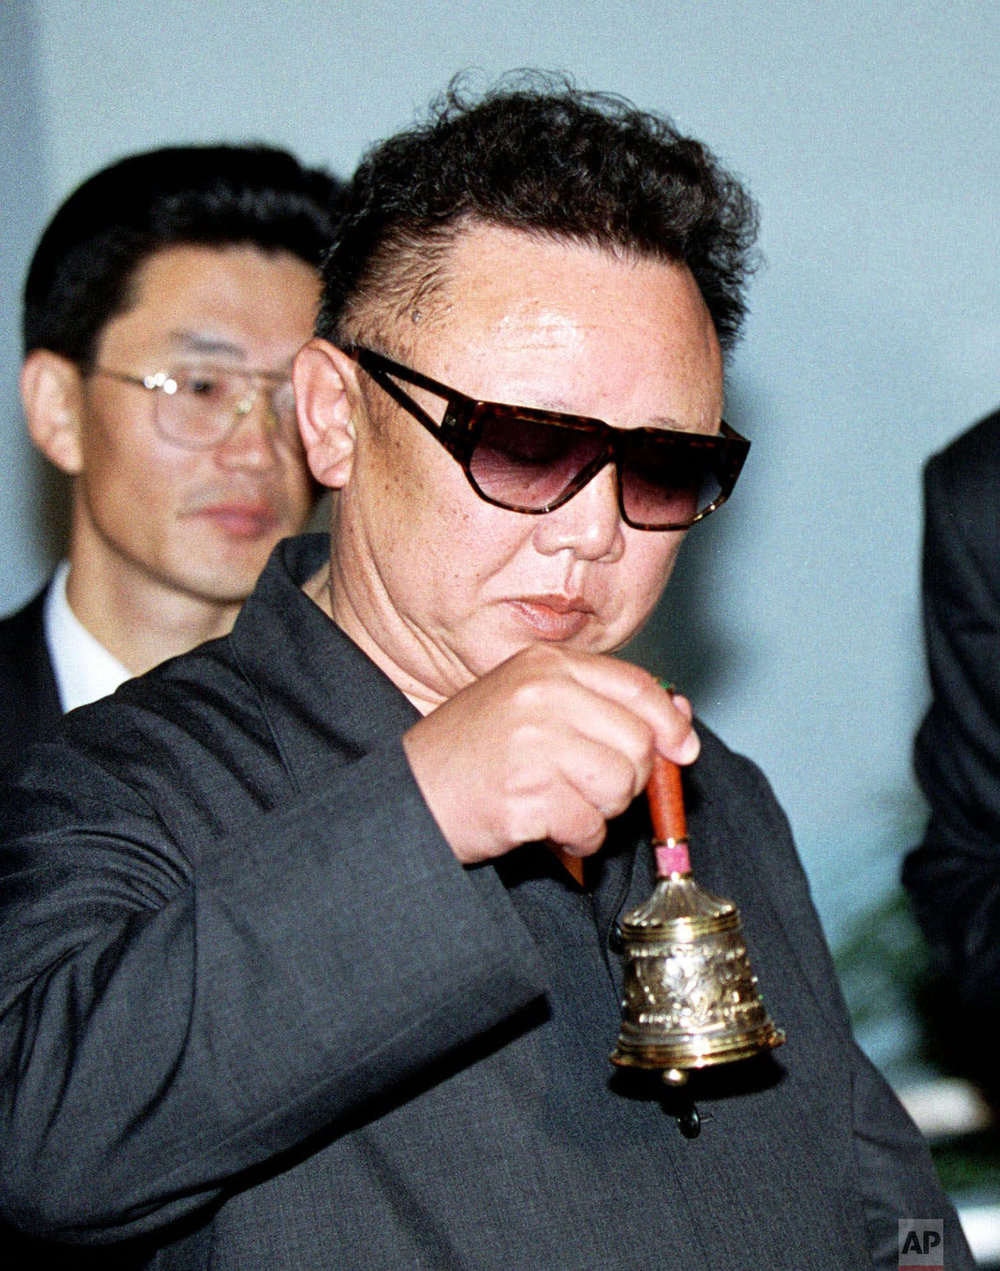 North Korea's leader Kim Jong Il rings a bell that was presented to him at the railway station in Khasan, Russia, just over the border from North Korea, on July 26, 2001, at the start of a 10-day train journey to Moscow on the Trans-Siberian Railway. This was Kim's third foreign trip as leader of his impoverished and isolated country. (AP Photo/Igor Kochetkov)